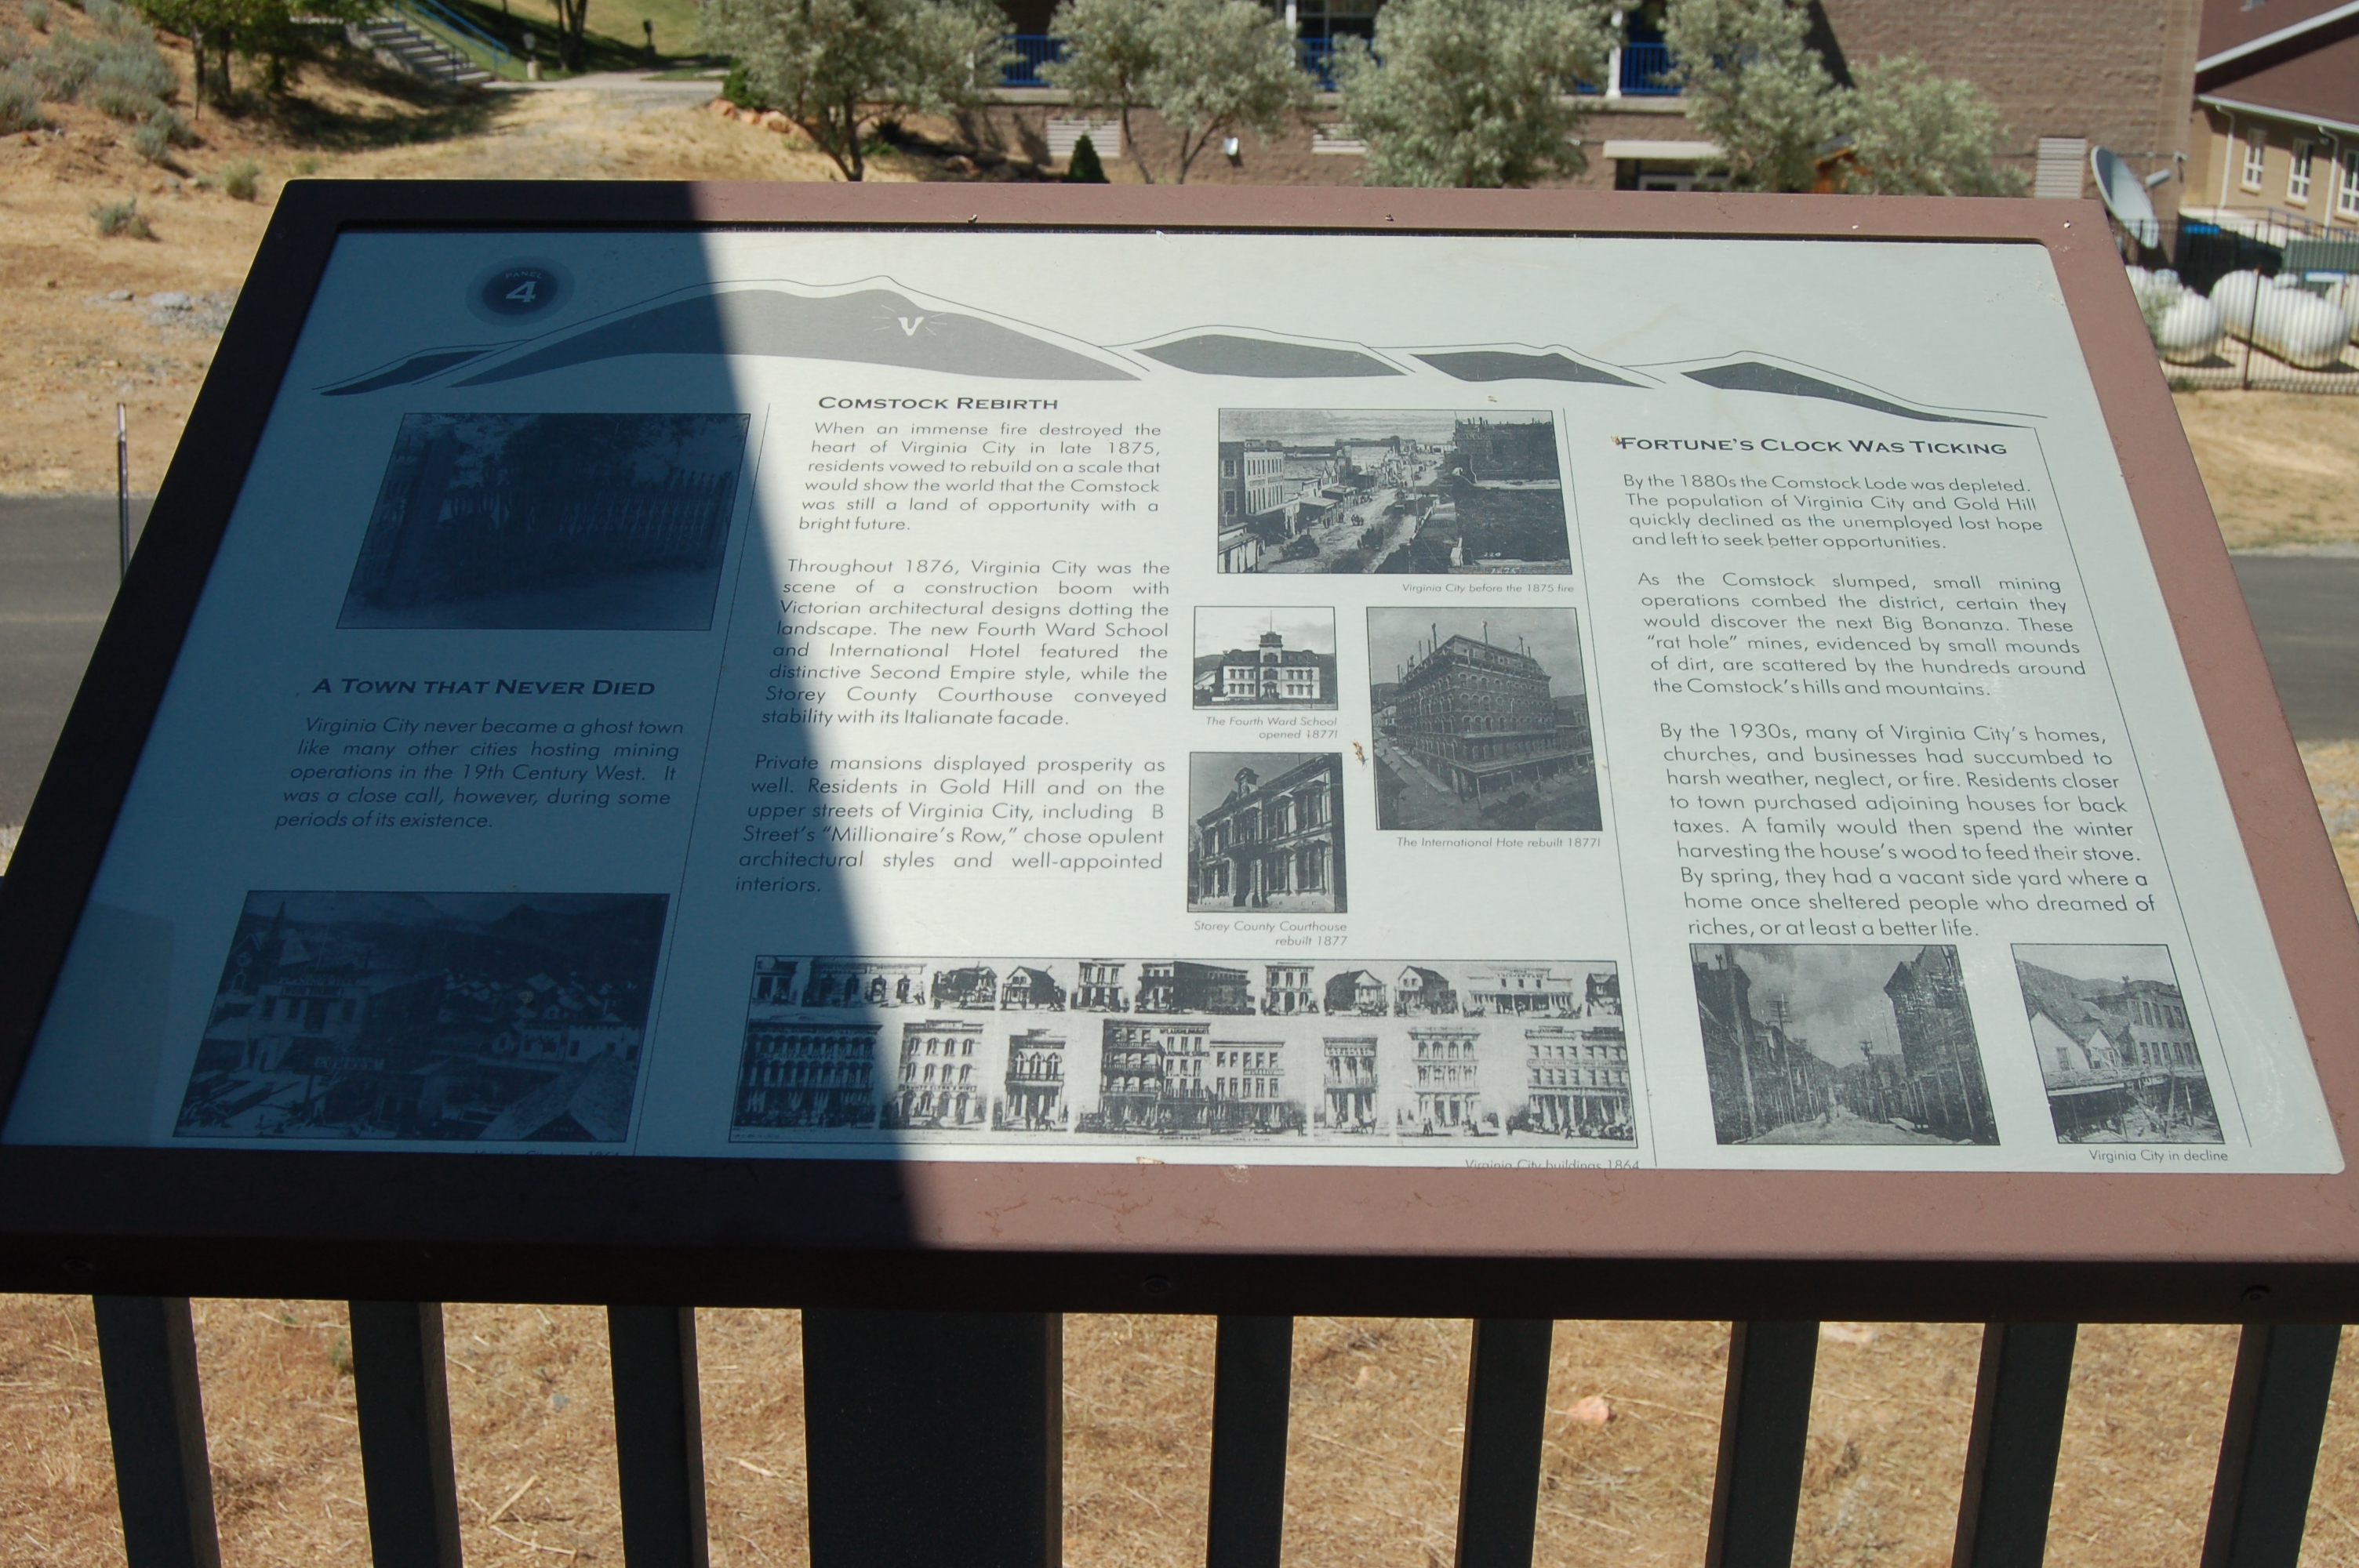 The Comstock Trail and History Kiosk Marker, Panel 4